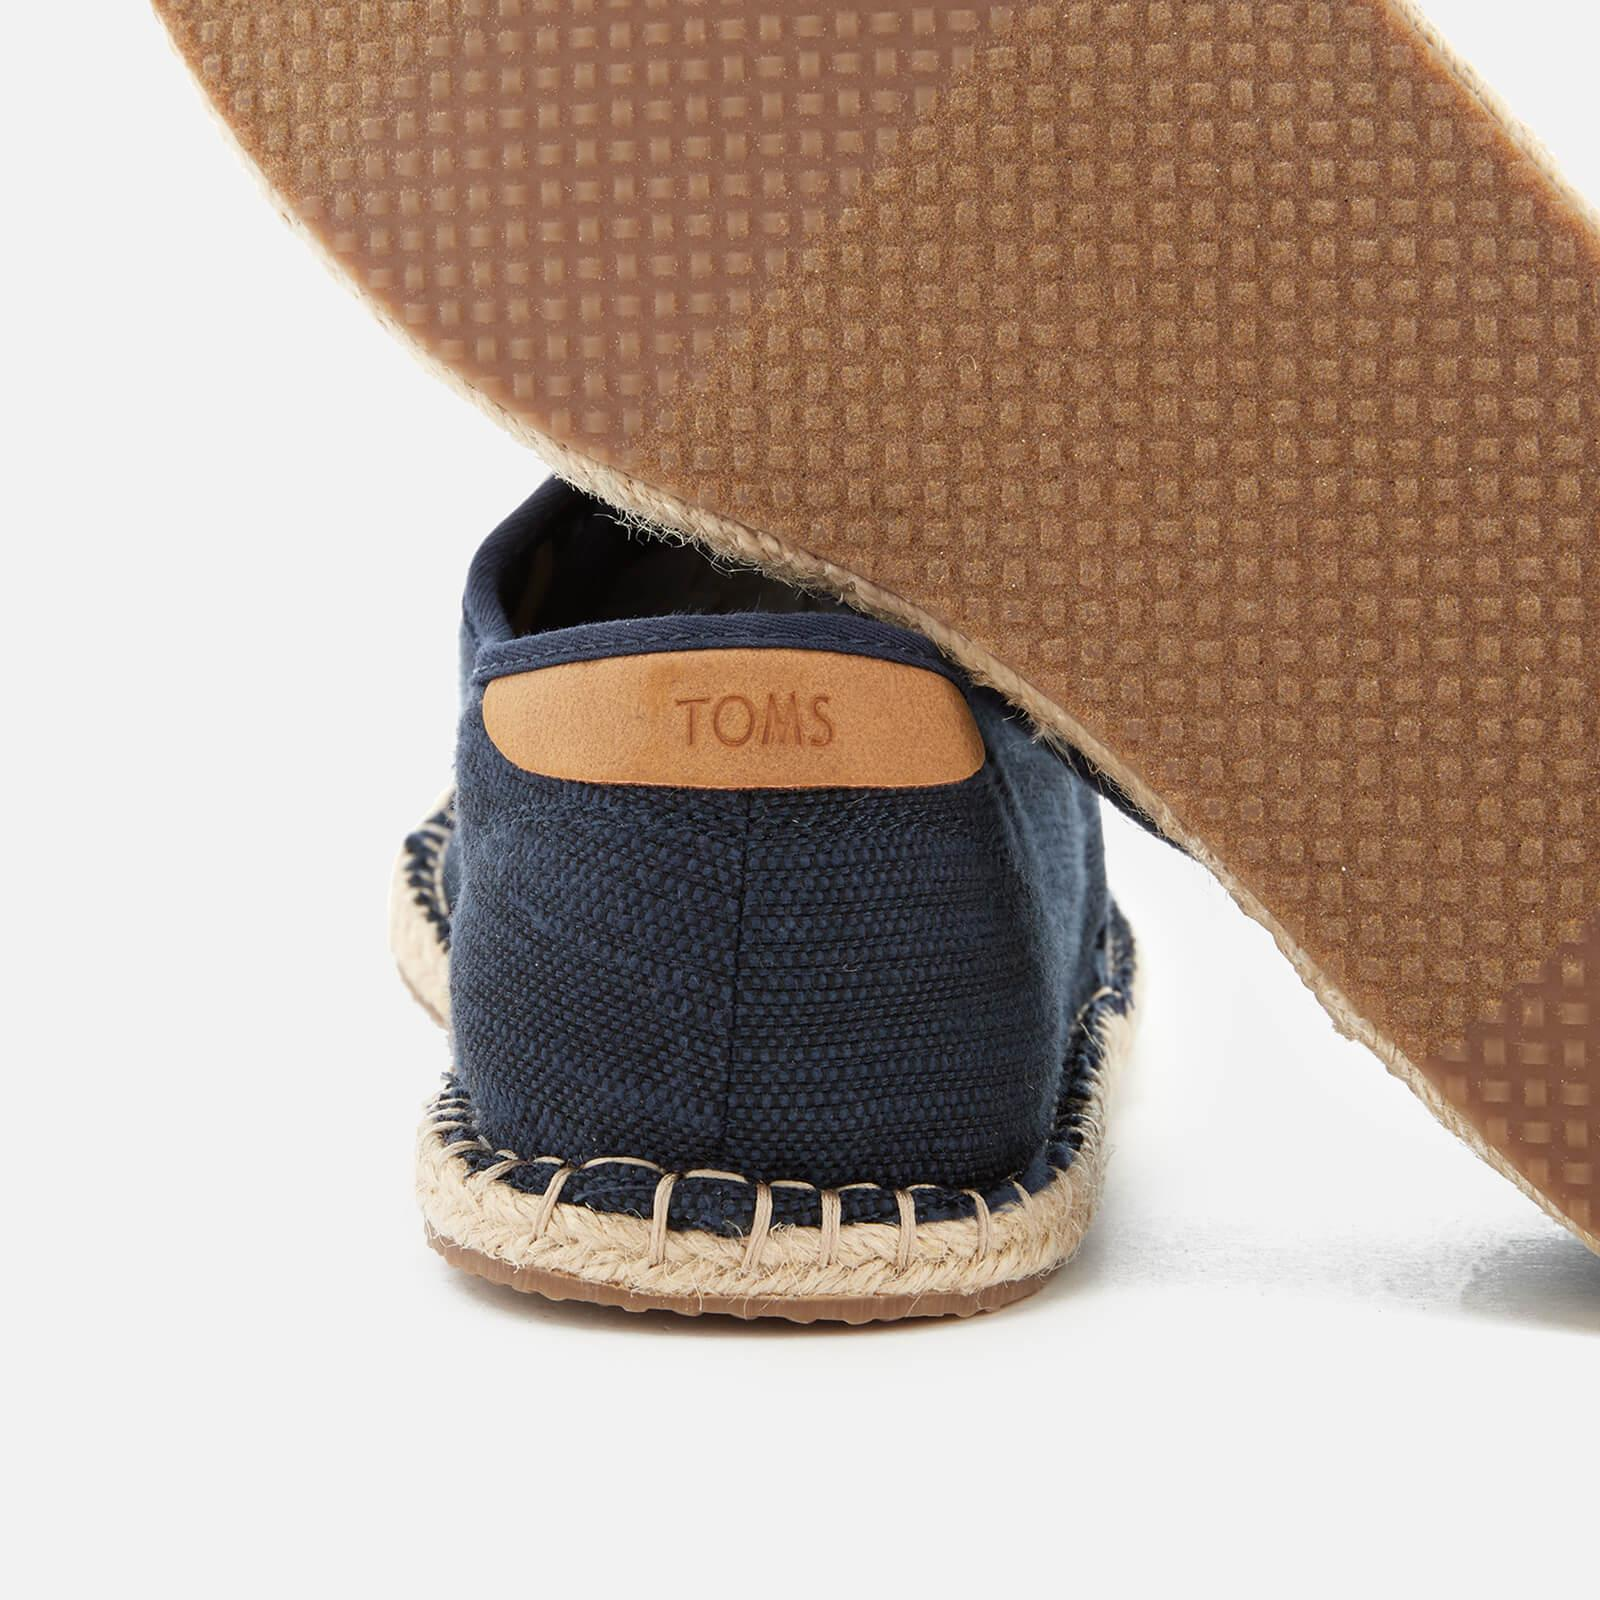 5afefa16bcd TOMS - Blue Diego Canvas Lace Up Espadrilles for Men - Lyst. View fullscreen